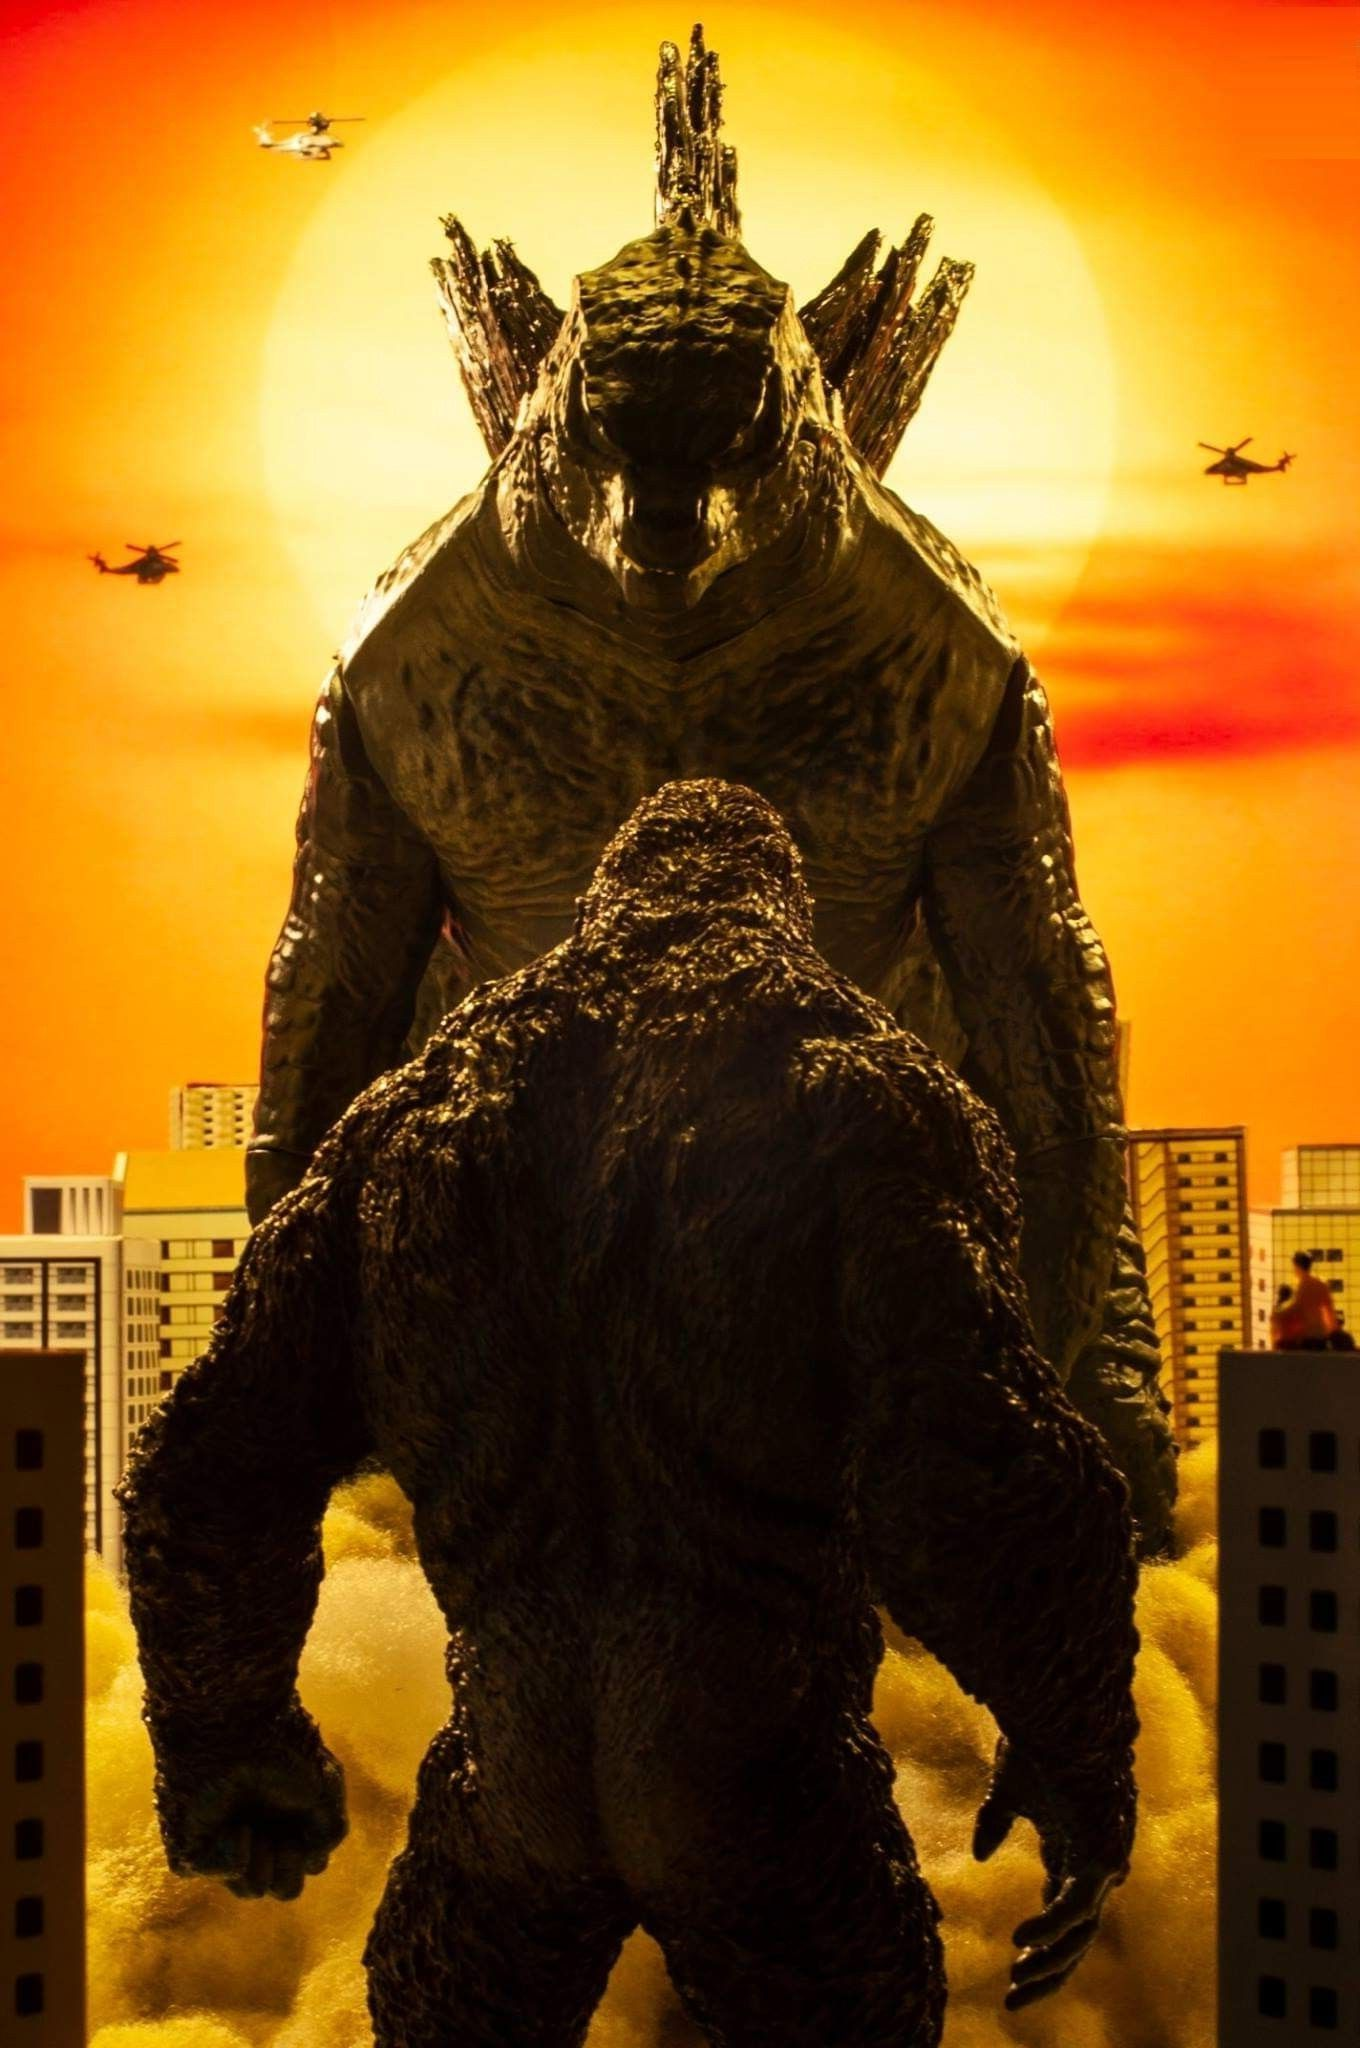 Godzilla Vs Kong Wallpaper For Mobile Phone Tablet Desktop Computer And Other Devices Hd And 4k Wall In 2021 King Kong Vs Godzilla Godzilla Comics Godzilla Wallpaper